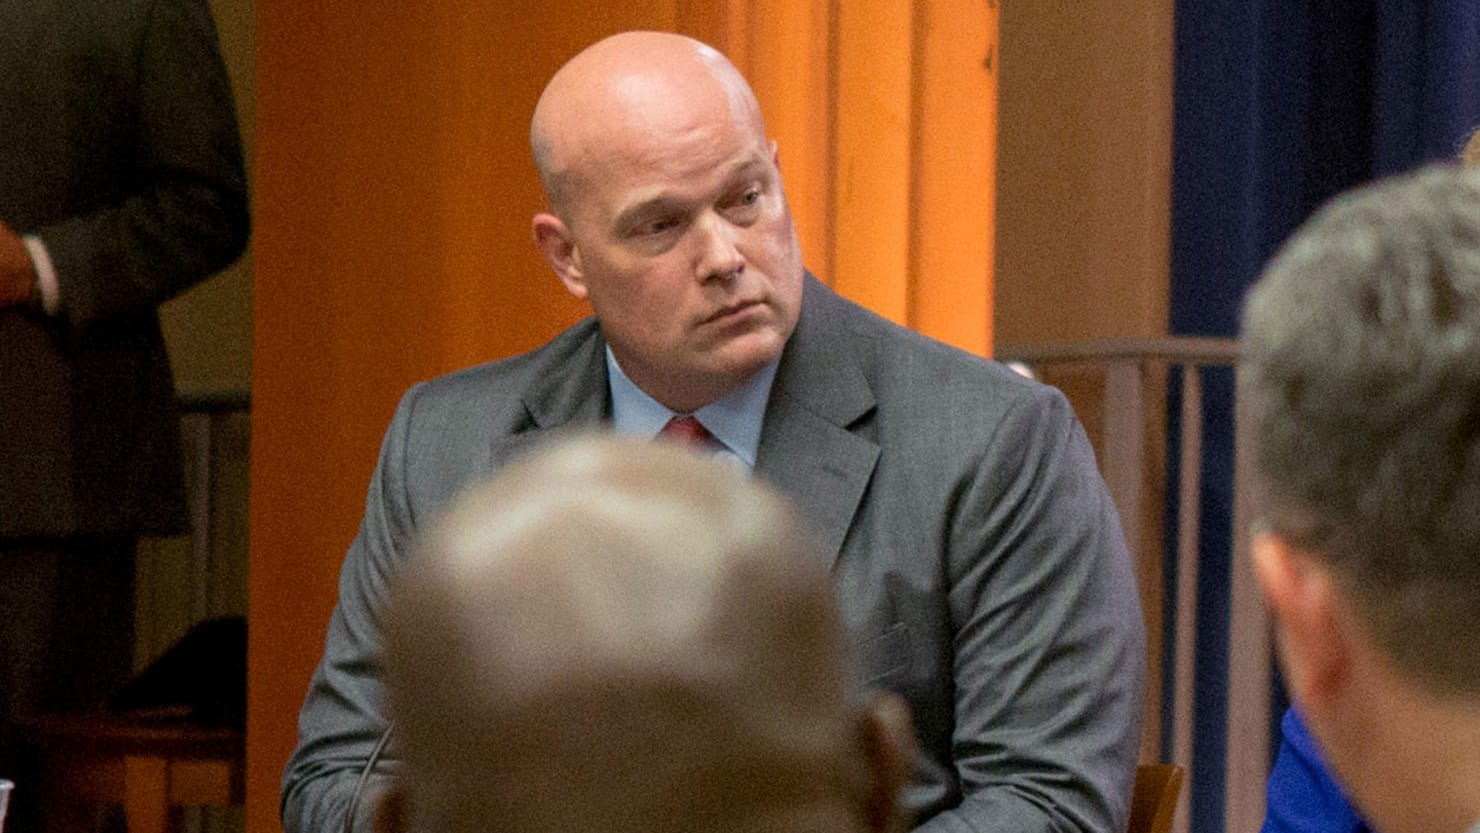 matthew whitaker  a mueller critic  named acting attorney